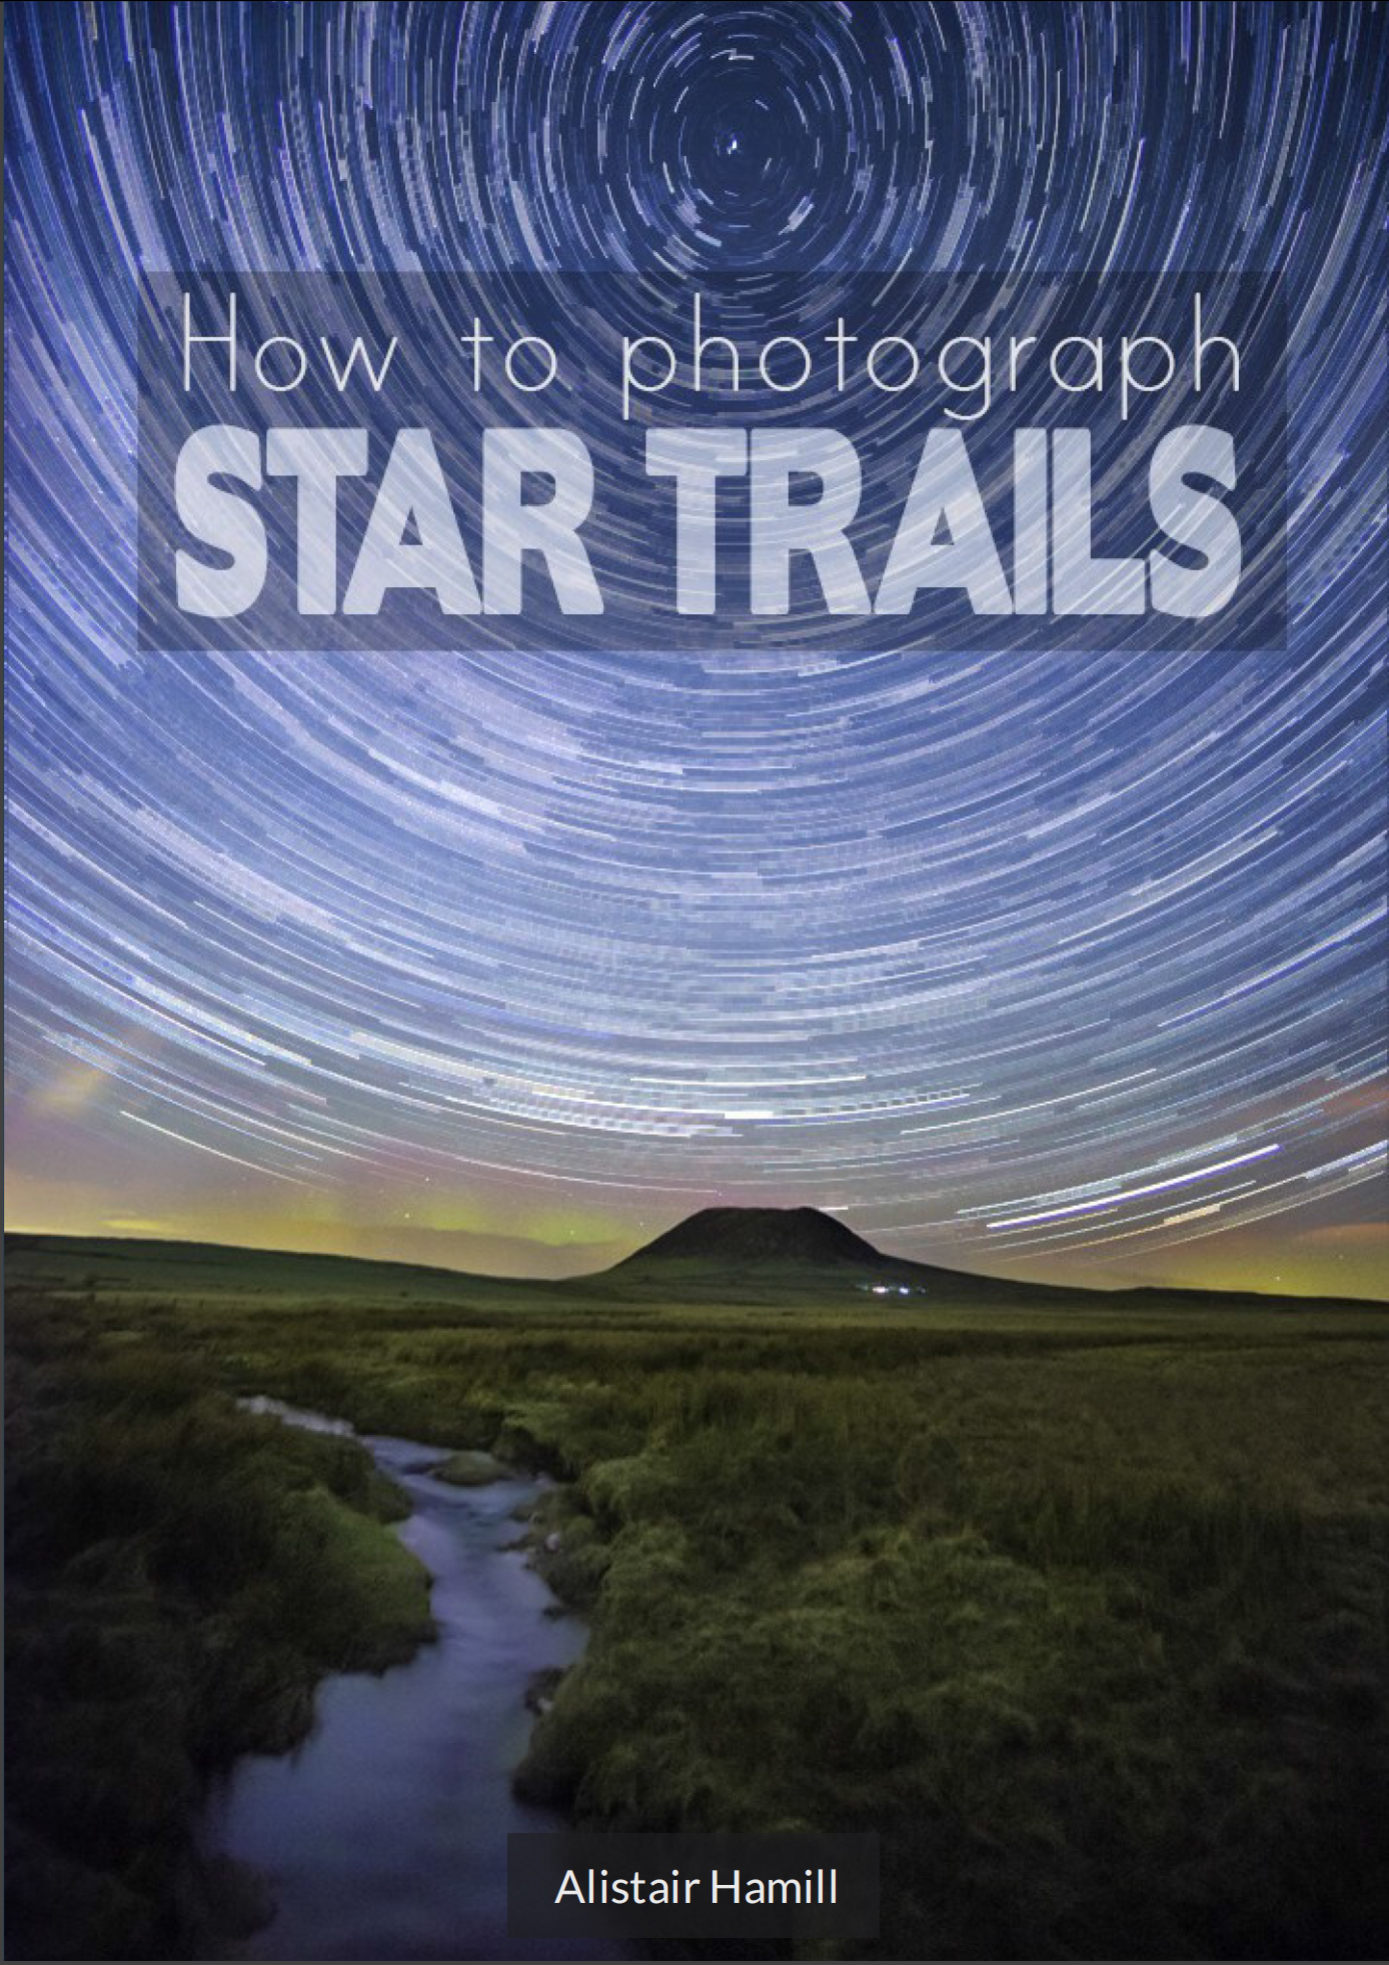 How+to+photograph+star+trails+cover.jpg